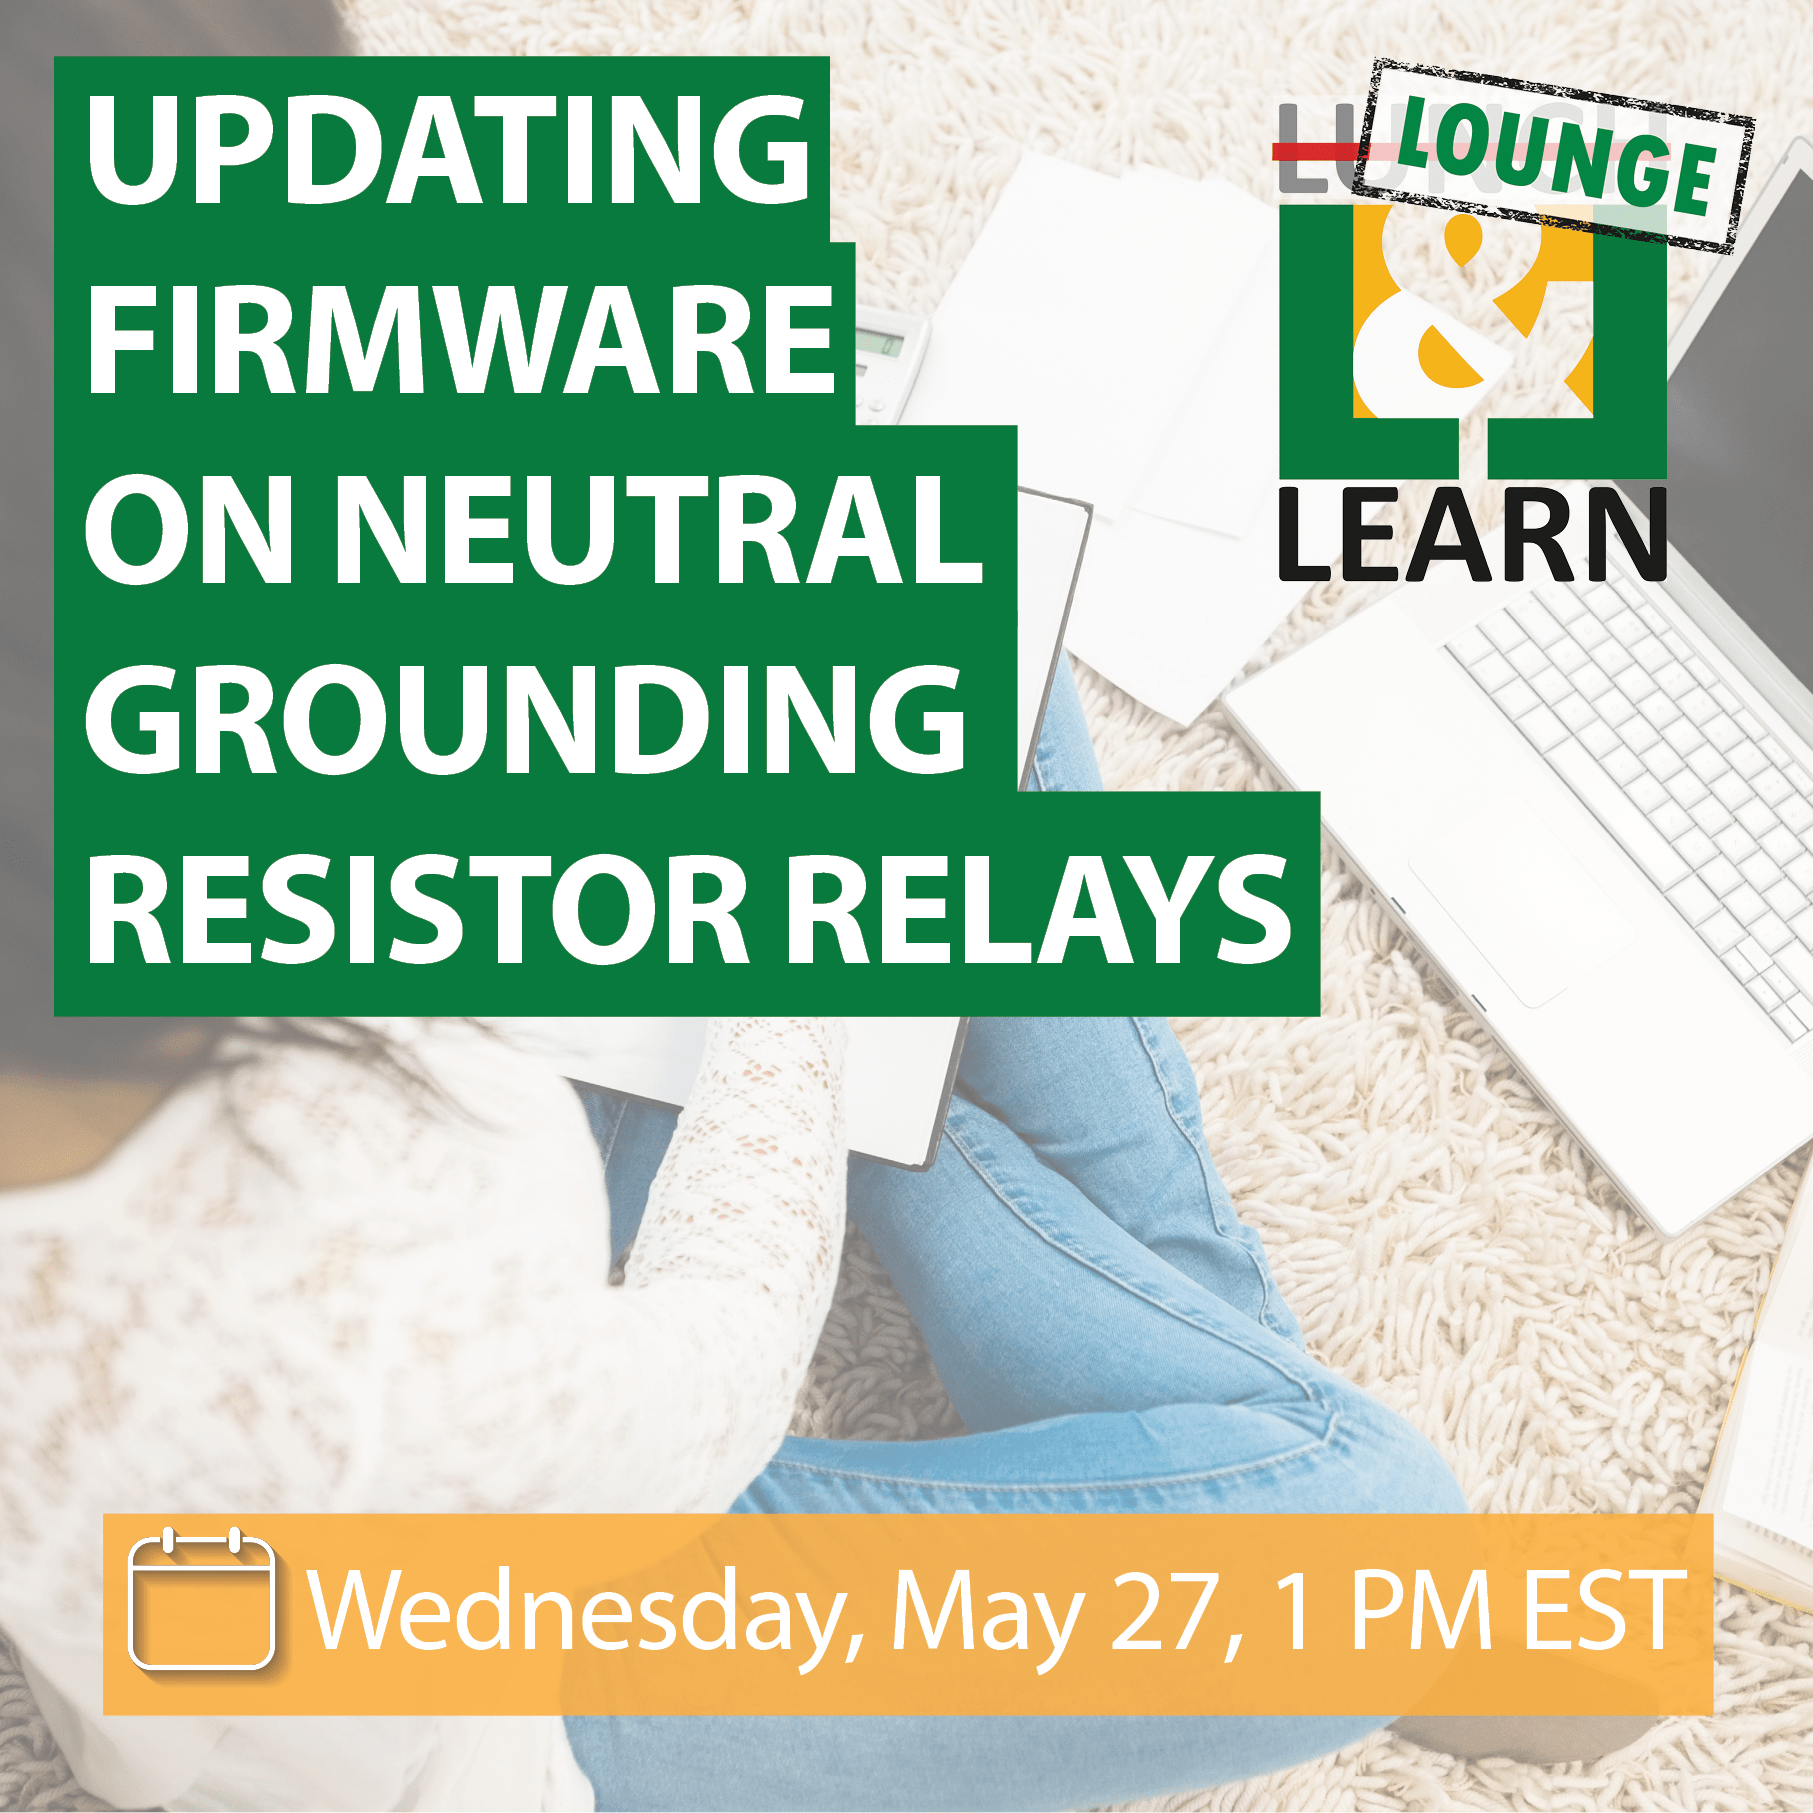 Lounge & Learn: Updating Firmware on Neutral Grounding Resistor Relays